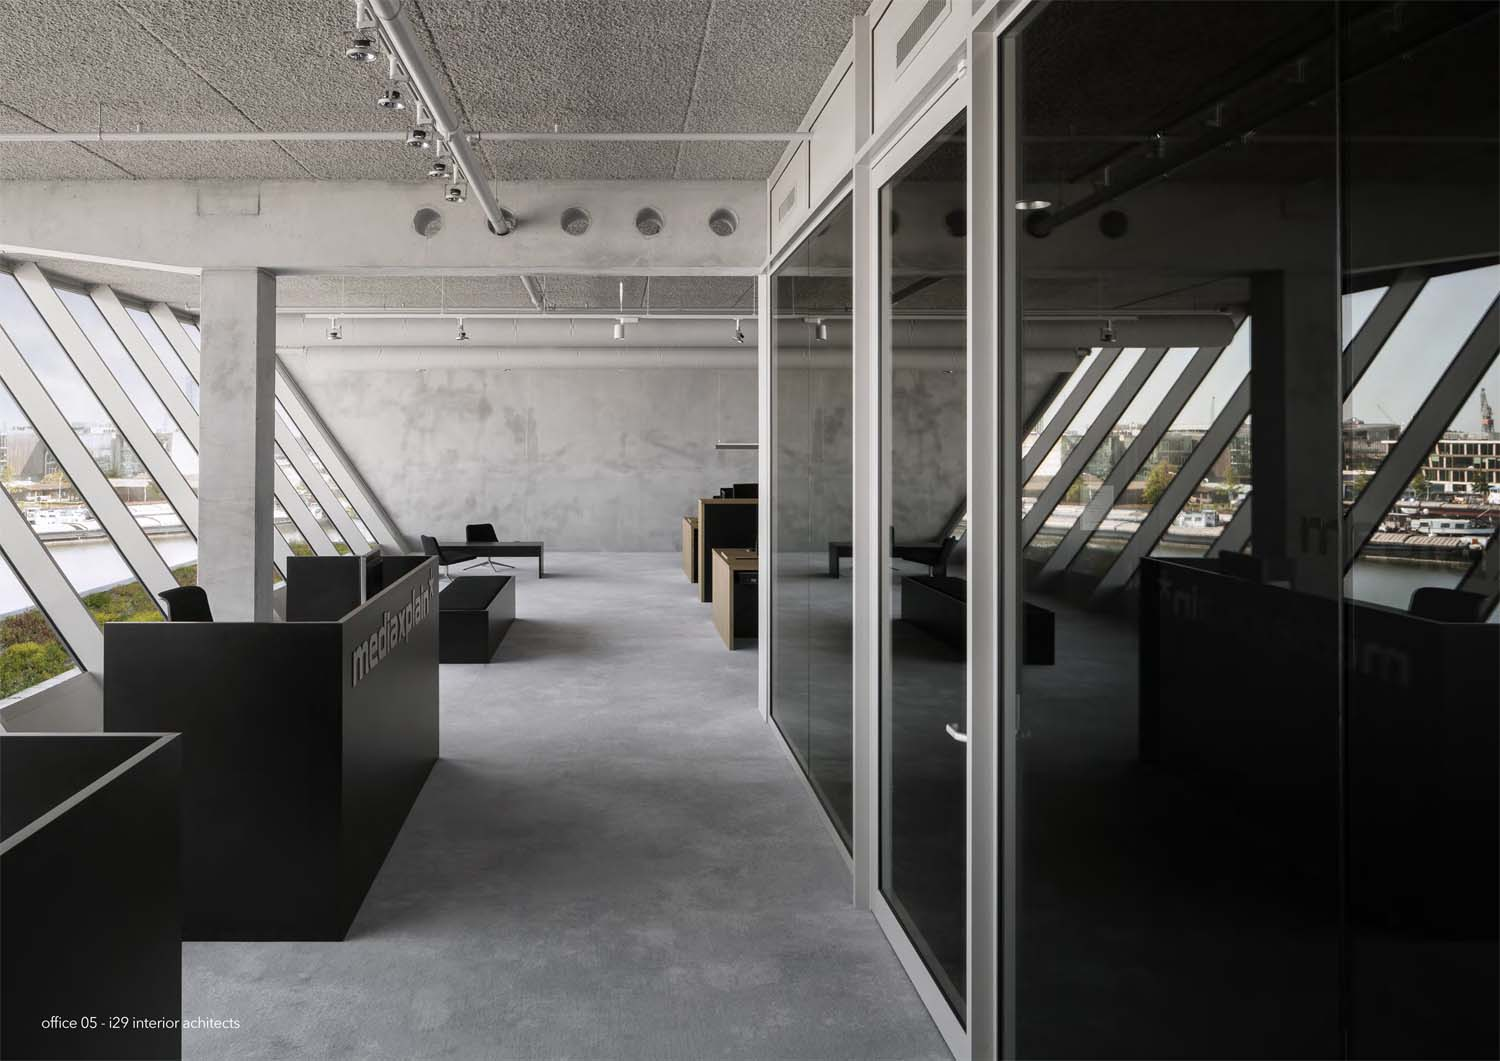 office 05 design by i29 interior Architects